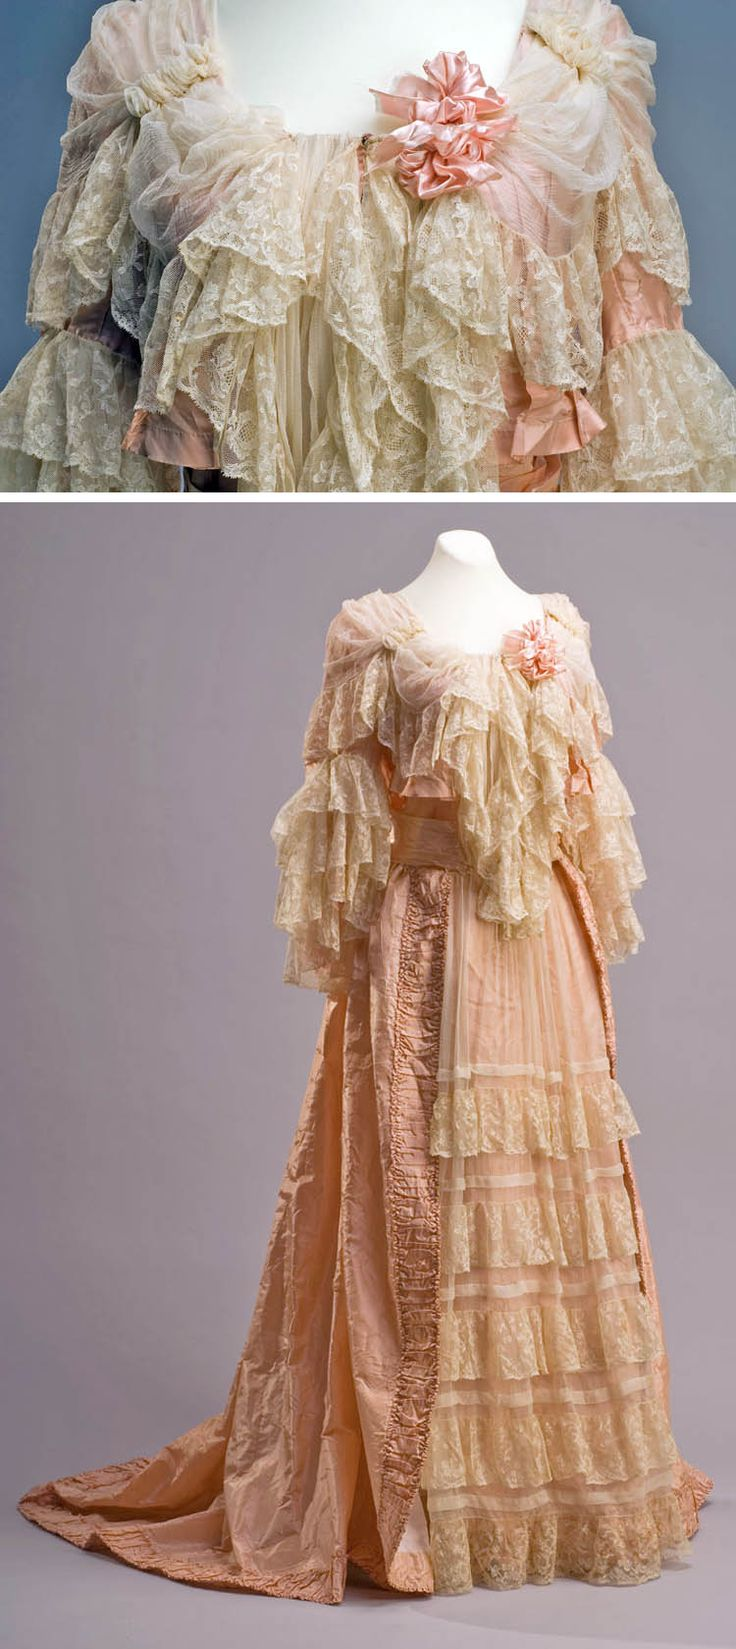 Dress (tea gown?), late 19th century. Silk satin and mixed lace. Museum of Mexican History